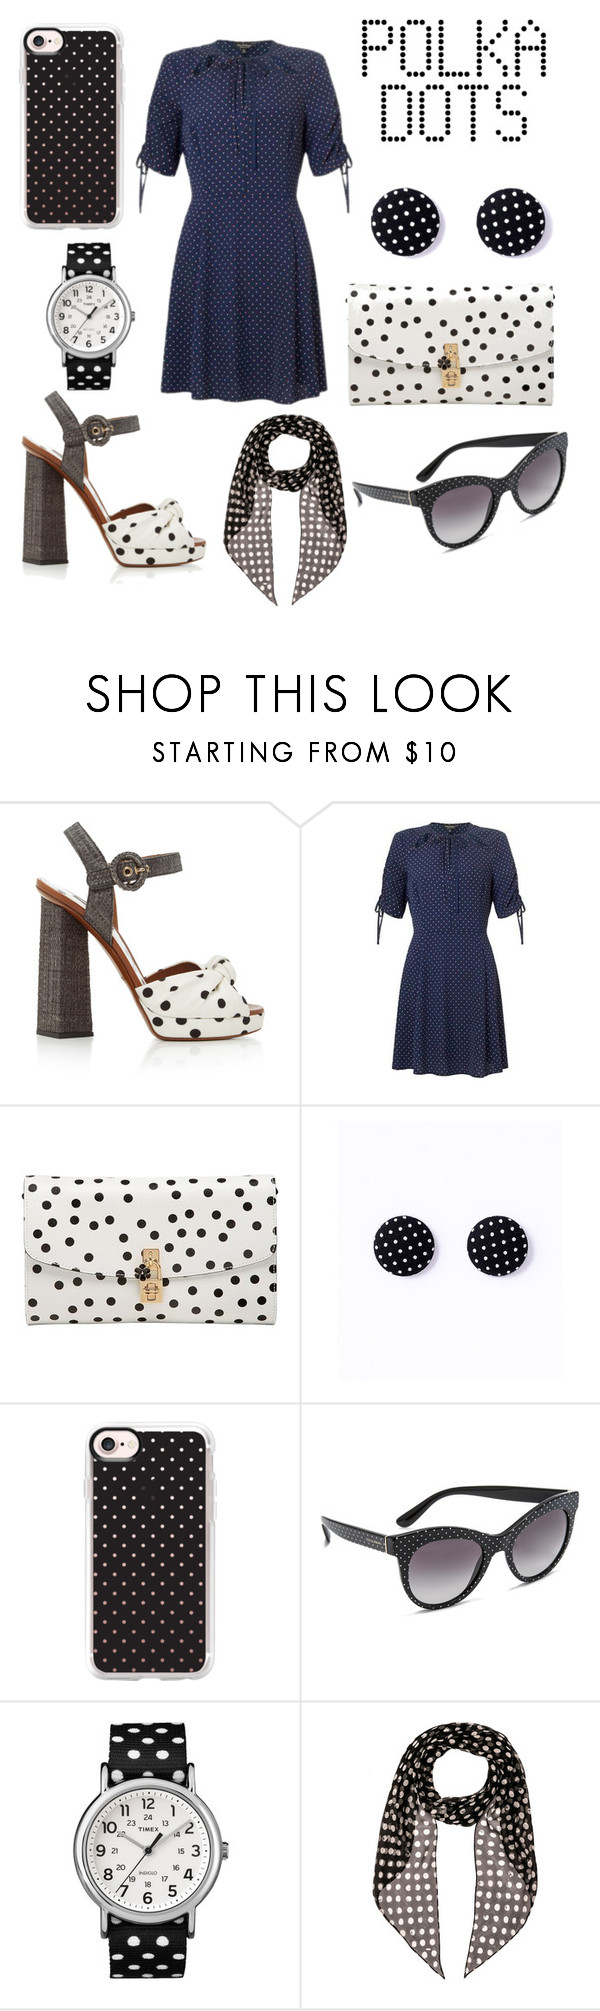 """""""Polka Dots"""" by andreacritina ❤ liked on Polyvore featuring Dolce&Gabbana, Casetify, Timex and Yves Saint Laurent"""